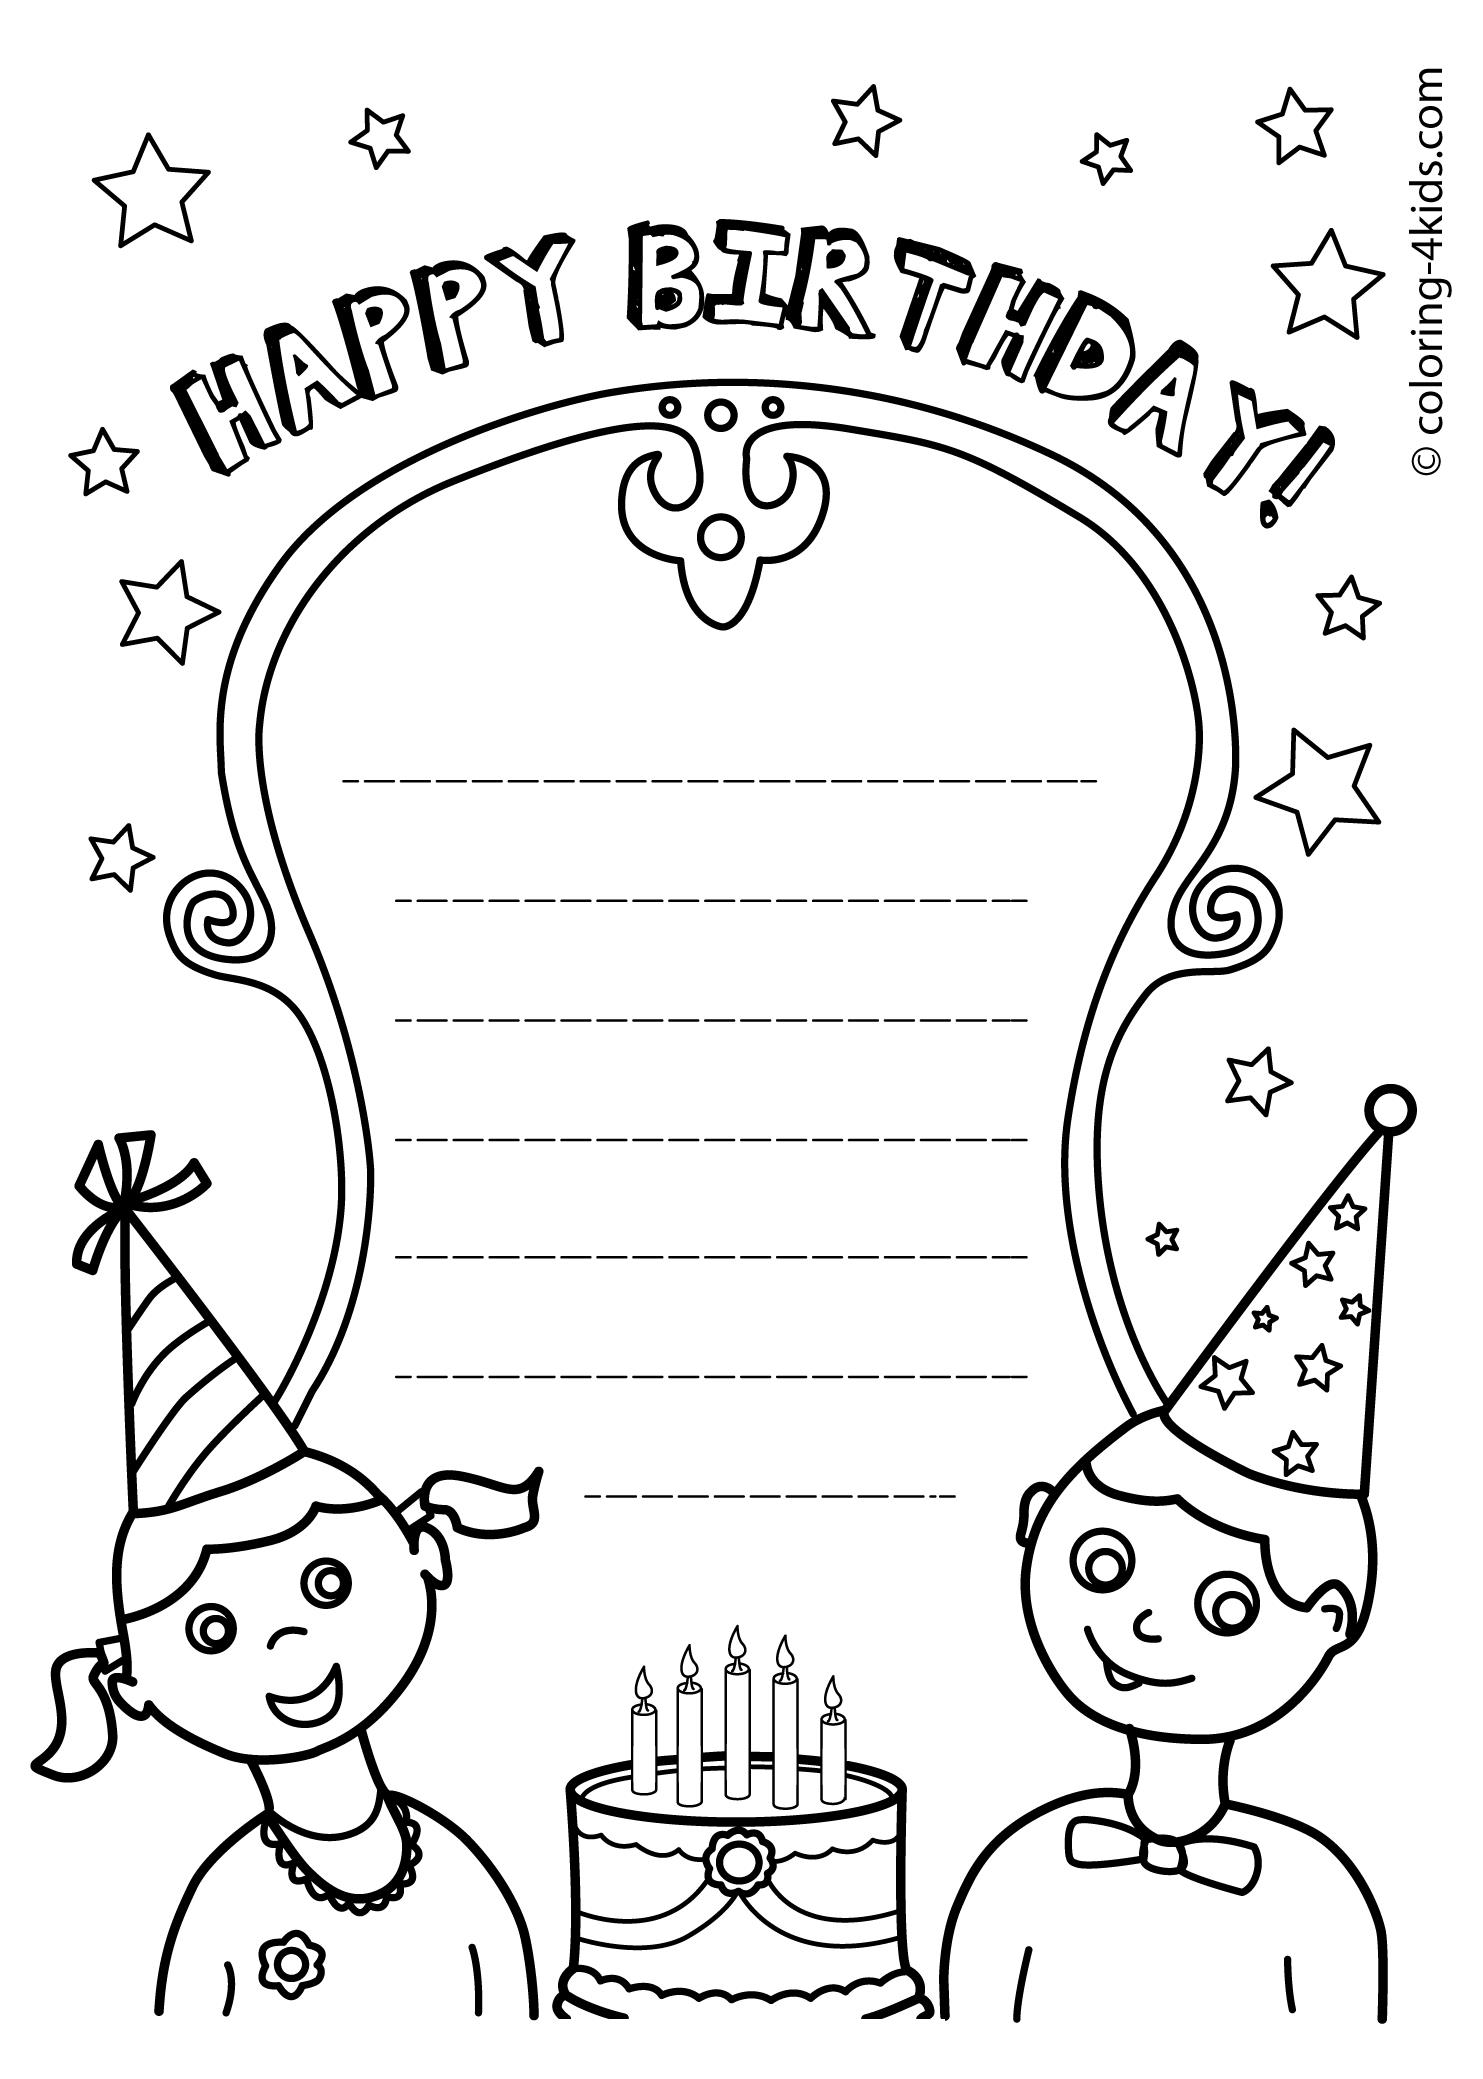 happy birthday aunt coloring pages ; complete-happy-birthday-aunt-coloring-pages-printables